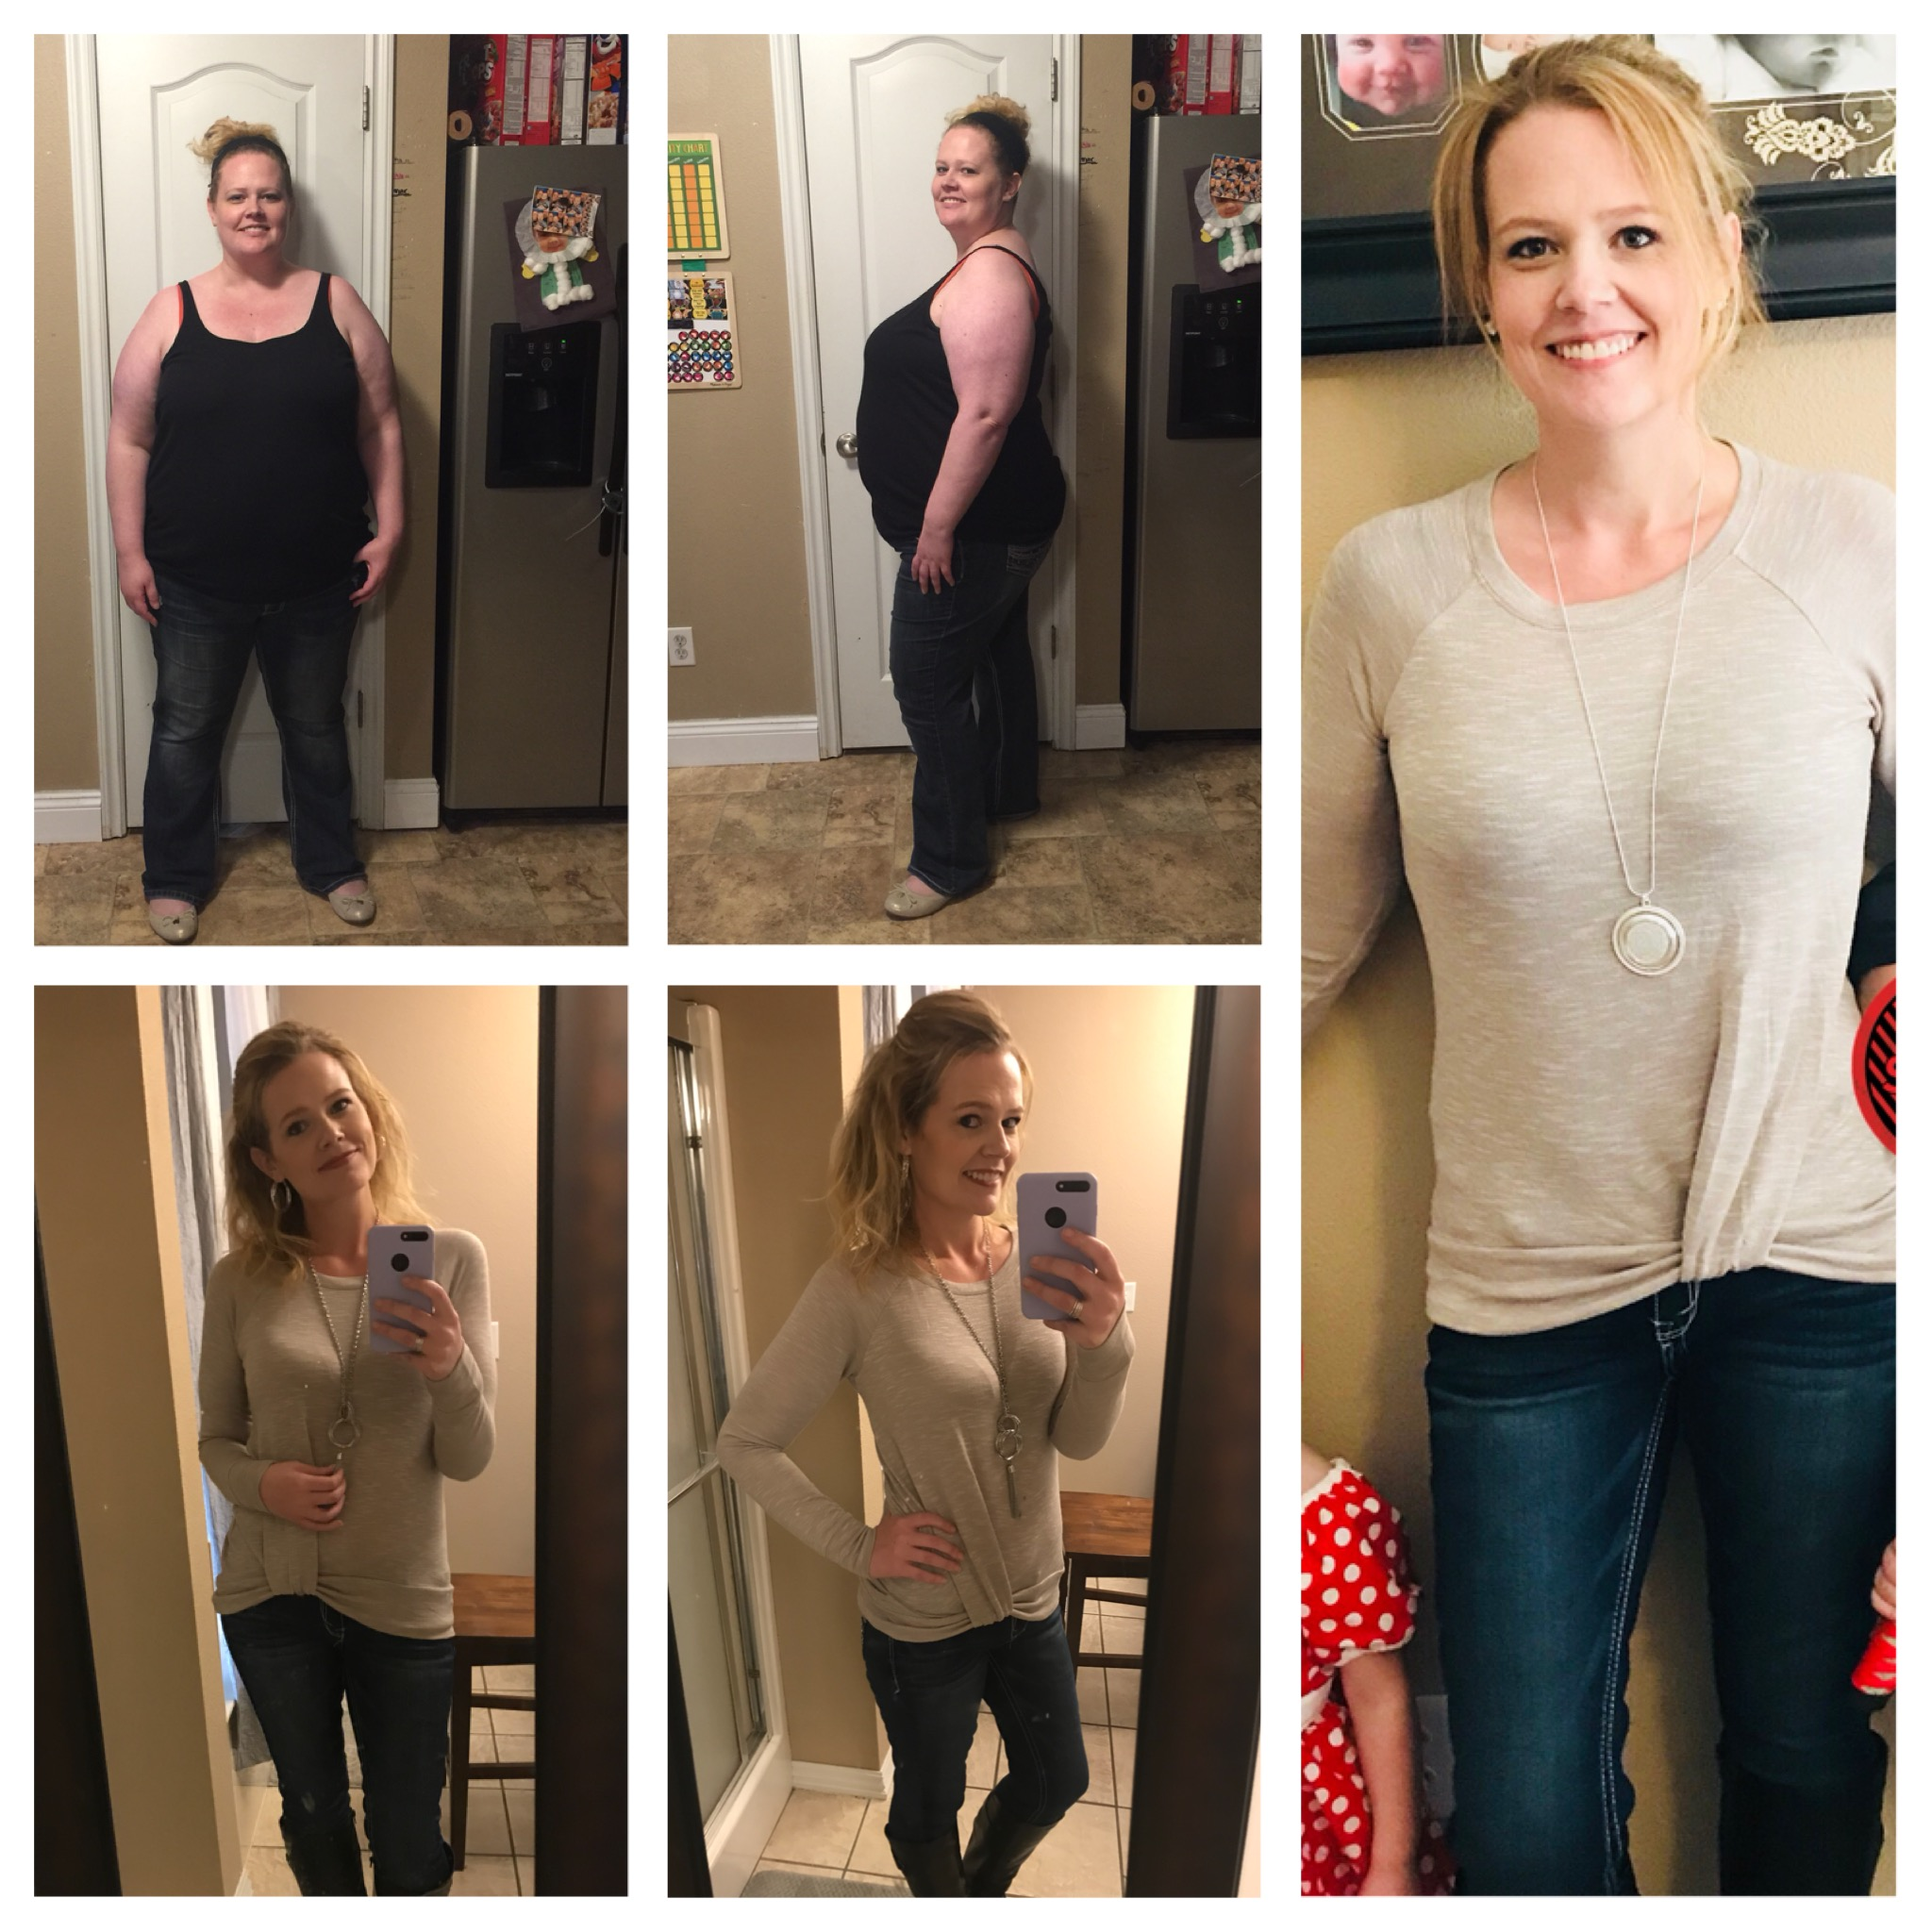 Sherry lost 165 pounds! See my before and after weight loss pictures, and read amazing weight loss success stories from real women and their best weight loss diet plans and programs. Motivation to lose weight with walking and inspiration from before and after weightloss pics and photos.